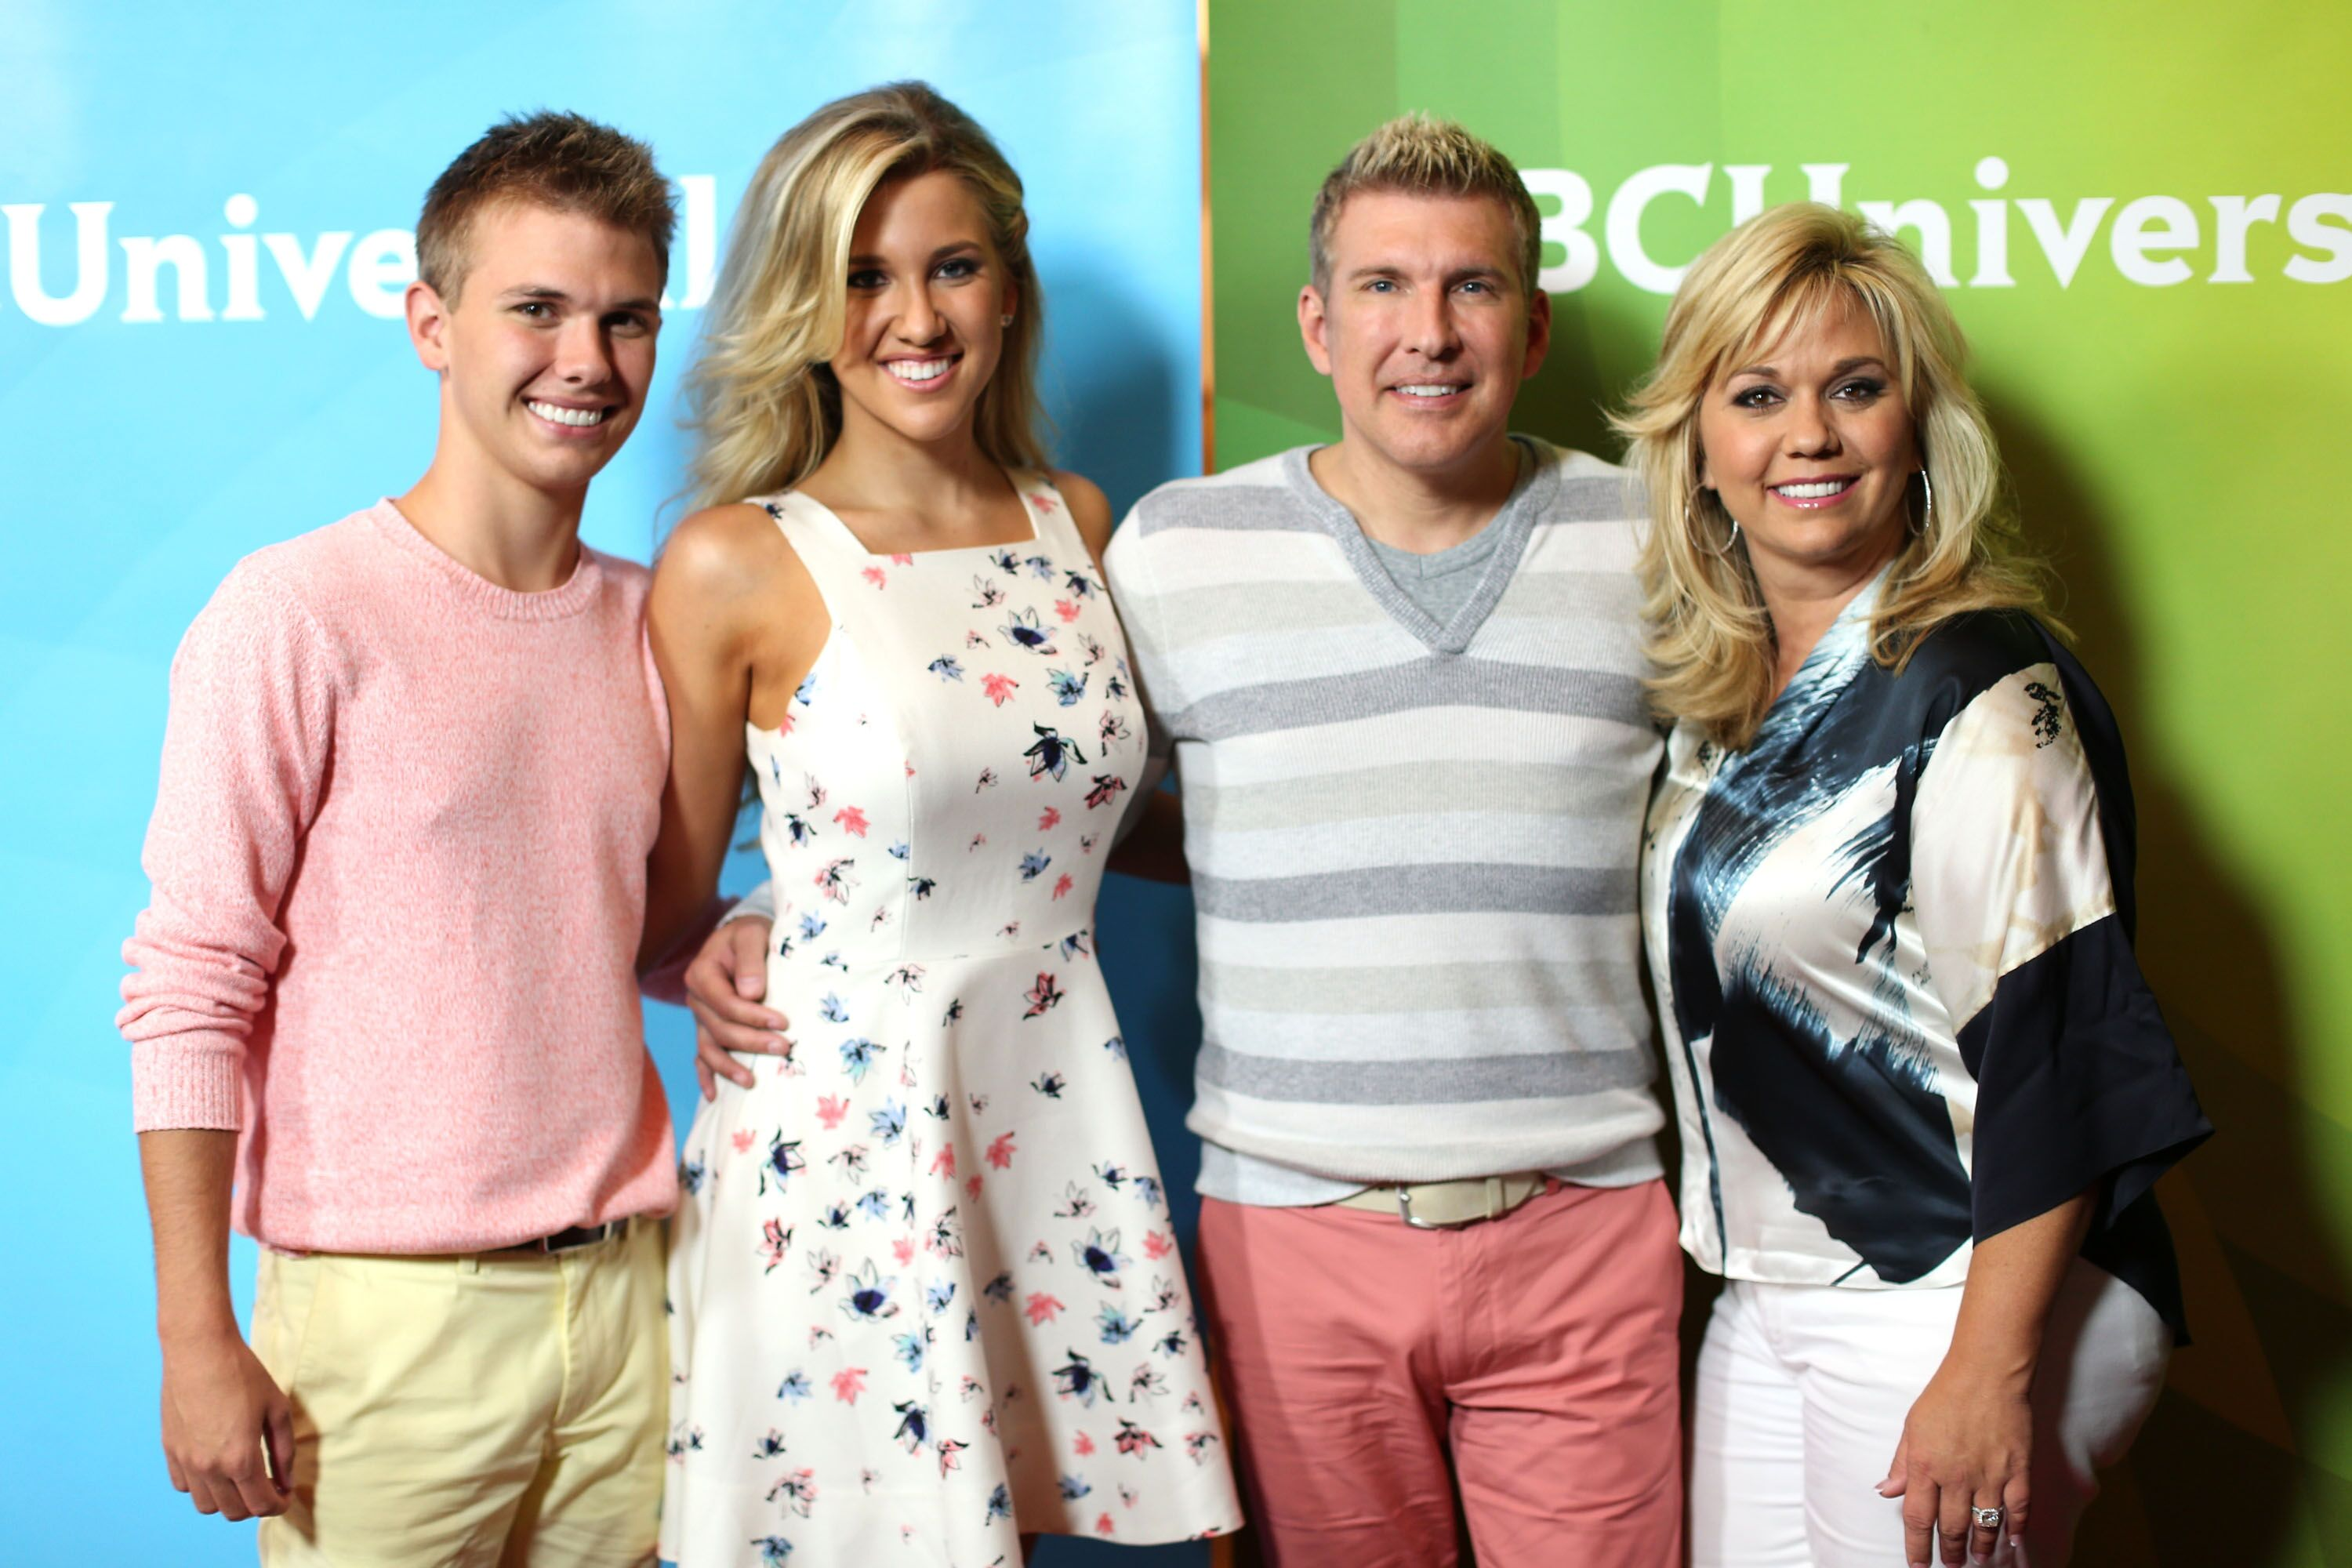 Chase Chrisley, Savannah Chrisley, Todd Chrisley and Julie Chrisley at NBCUniversal's 2014 Summer TCA Tour on July 14, 2014 | Photo: Getty Images